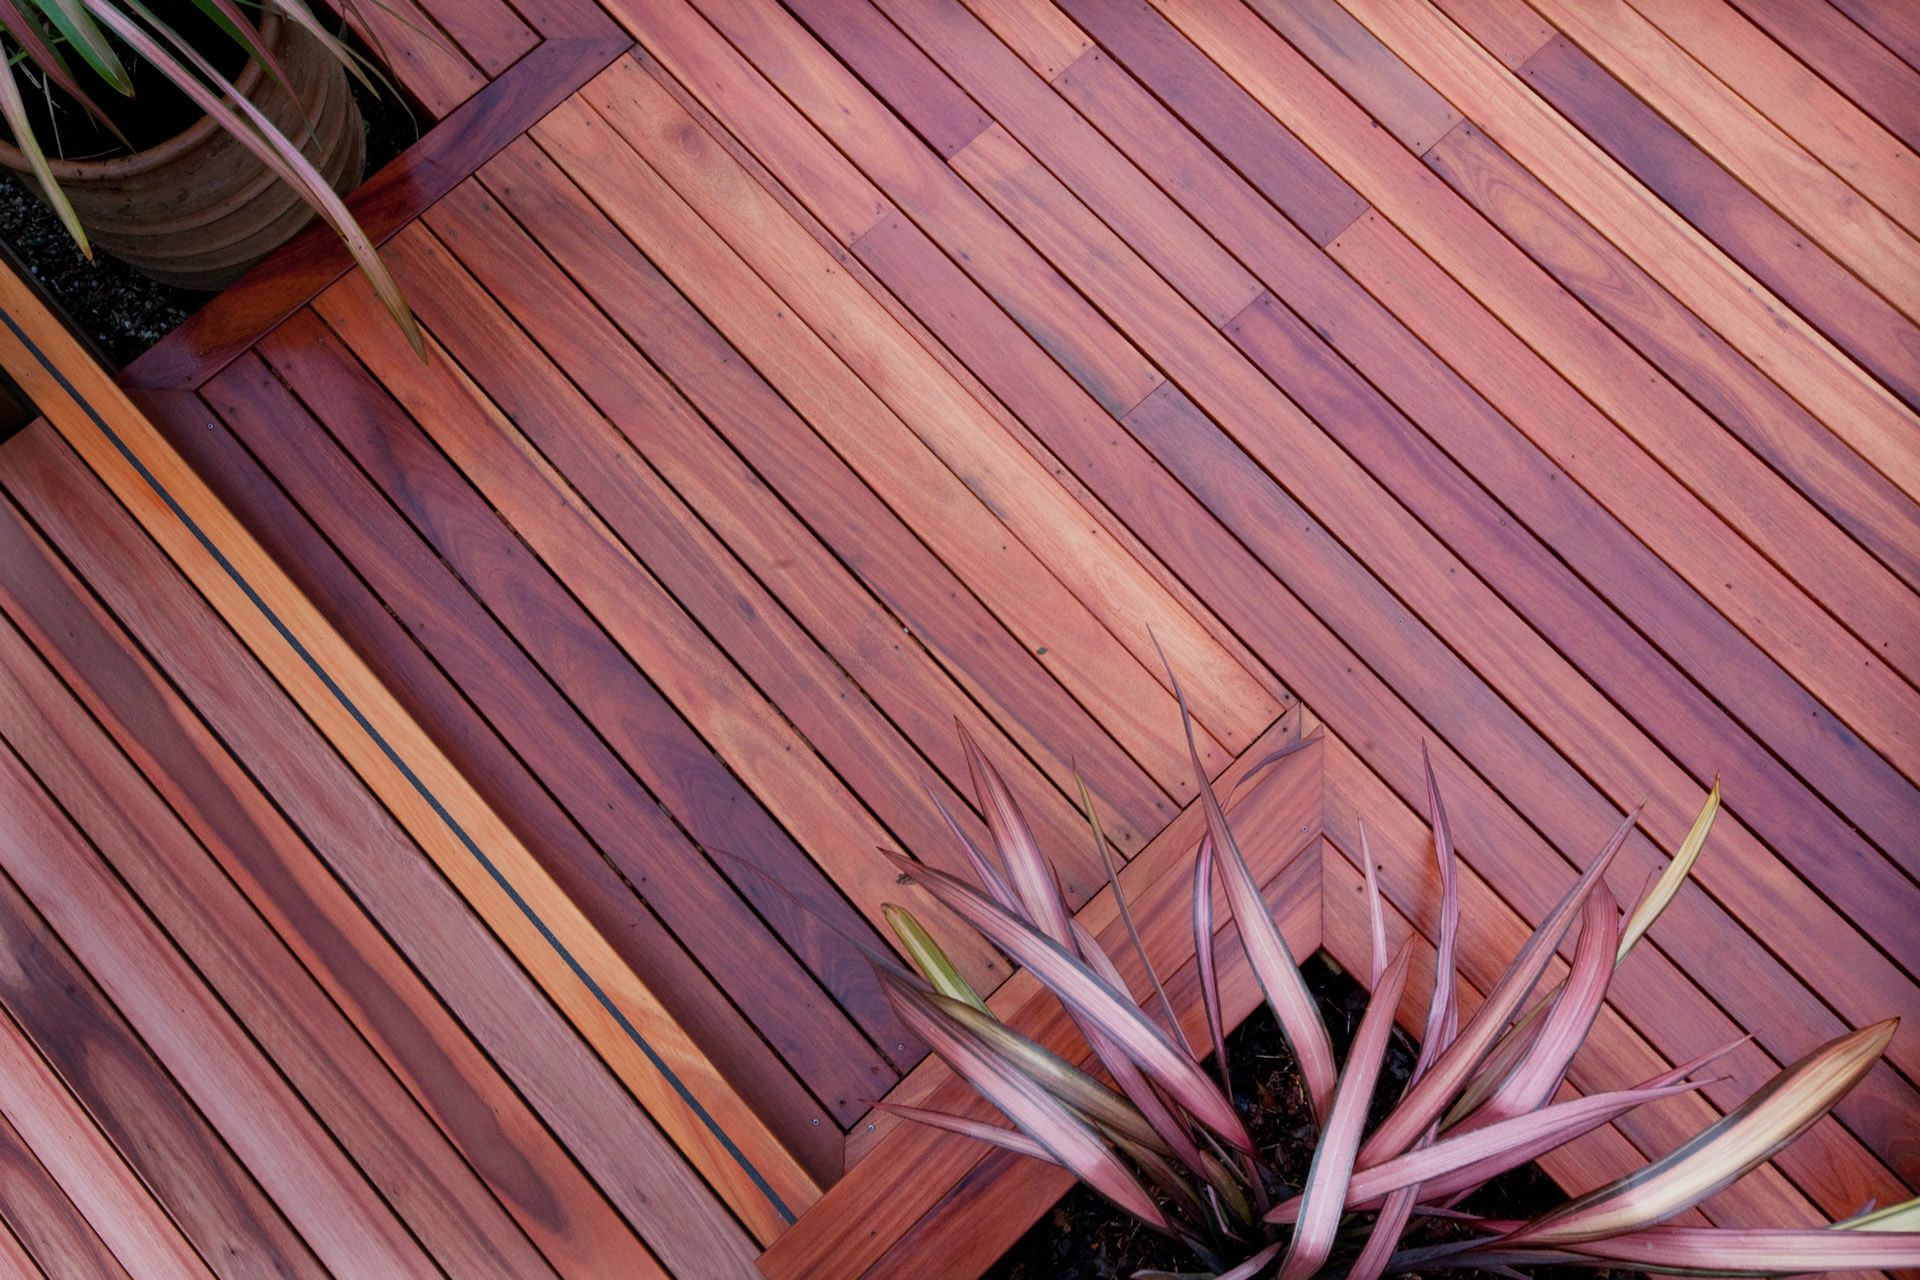 Q-Deck Lyptus Hardwood Decking After a Spring Rain Shower